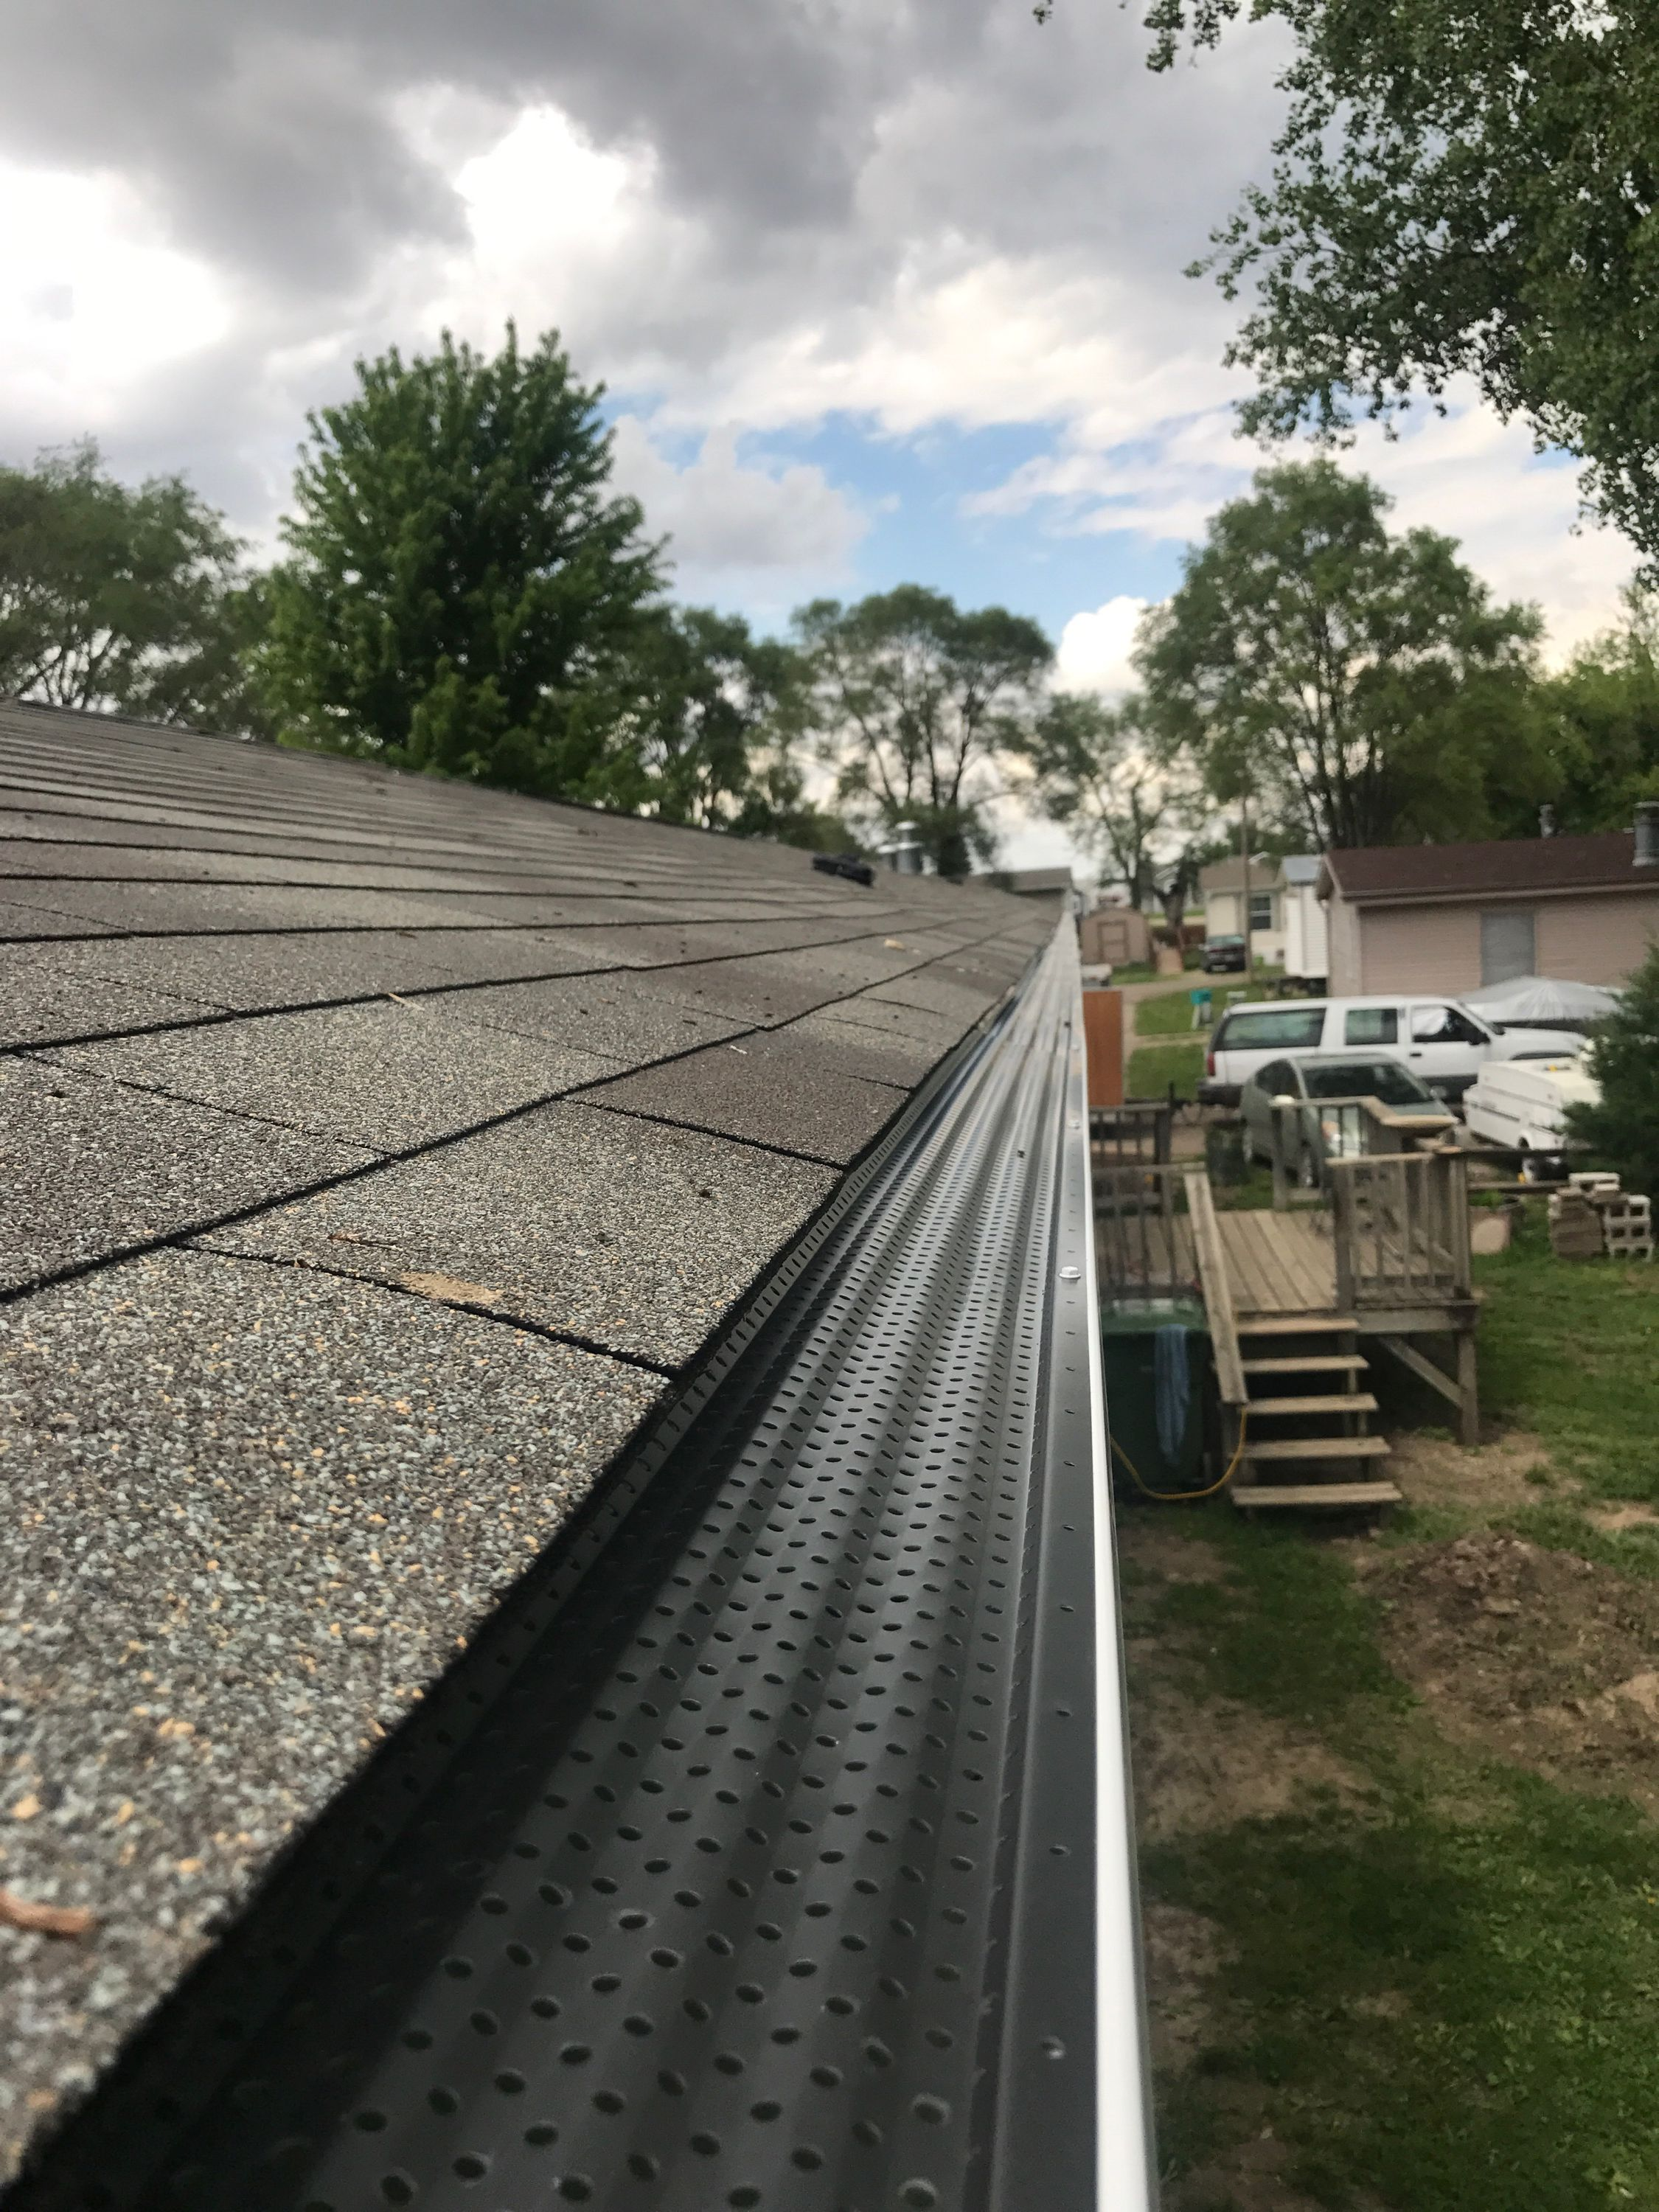 Pin By Joe Gutters Llc On Leaf Protection Our Form Of Gutter Helmet And Gutter Rx Gutter Helmet Railroad Tracks Gutter